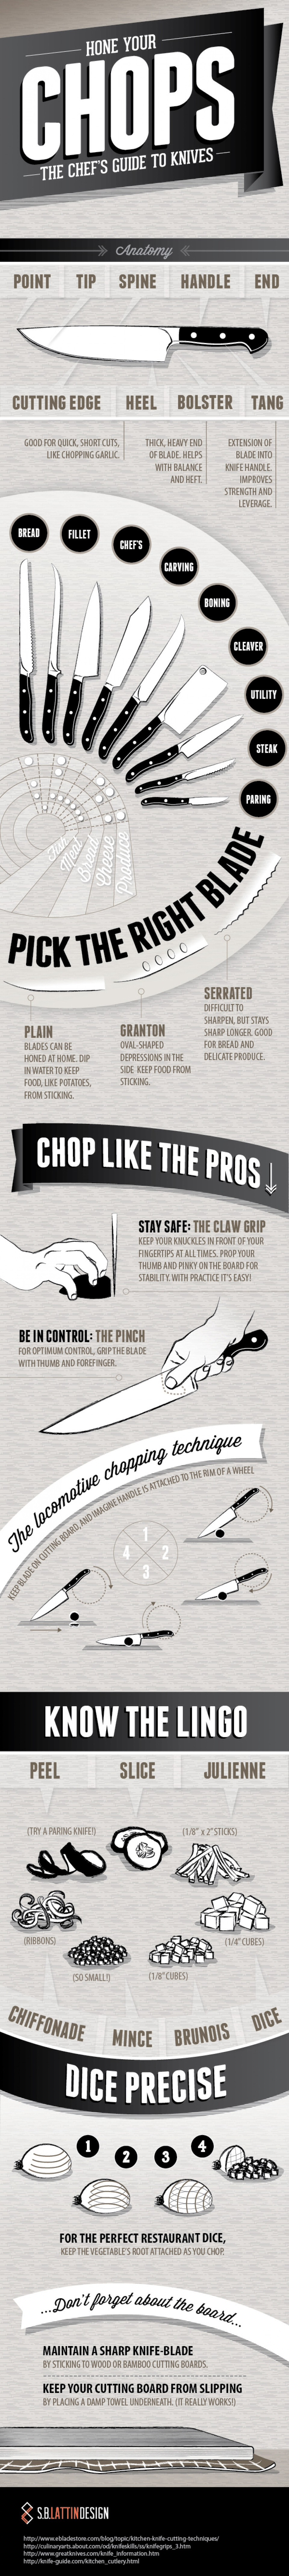 31. Know Your Knives and How to Use Them http://visual.ly/hone-your-chops-chefs-guide-knives